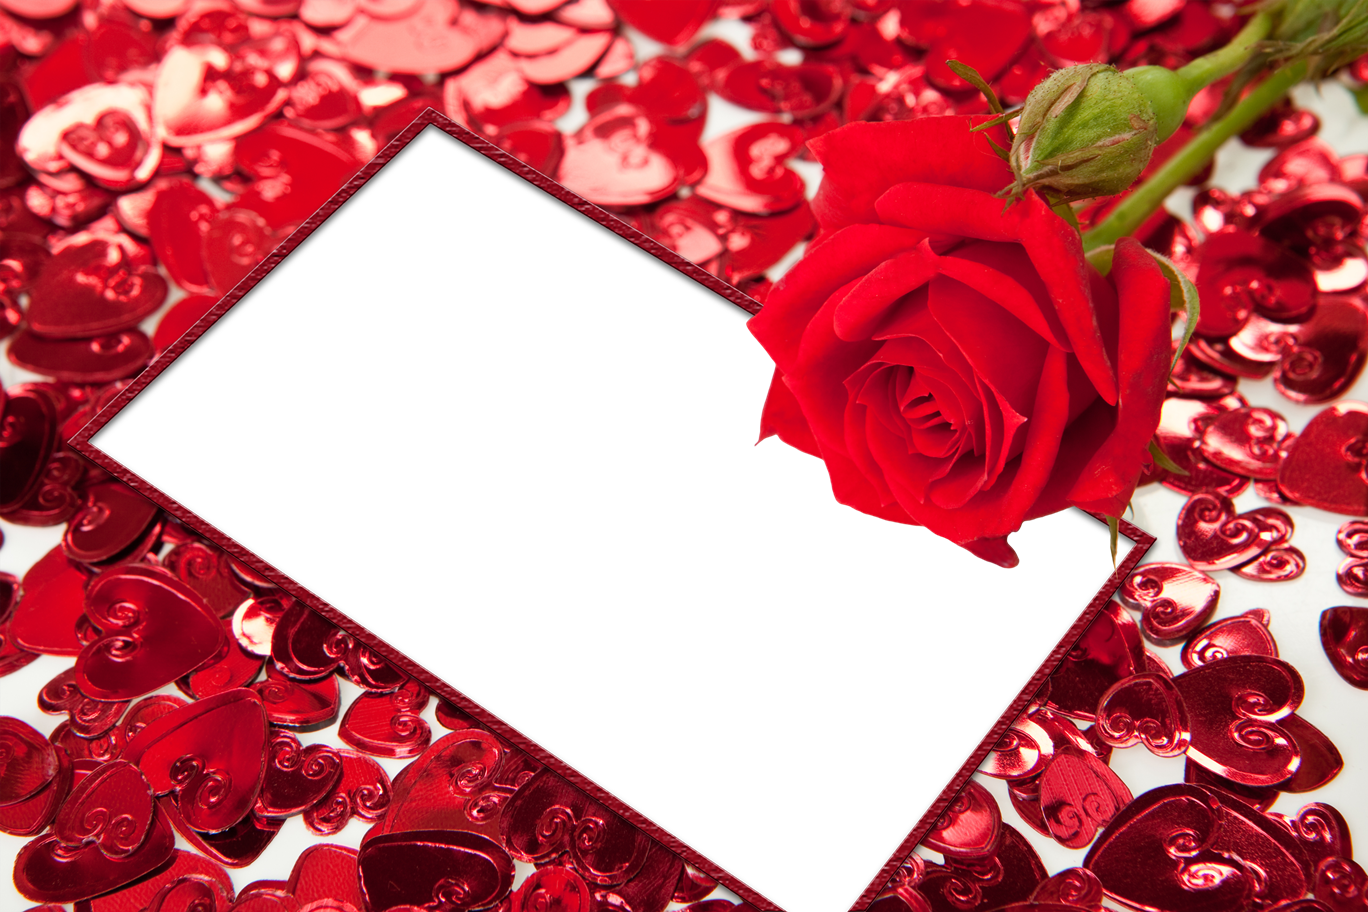 Picture Flower Heart Frame Video High-Definition Red PNG Image